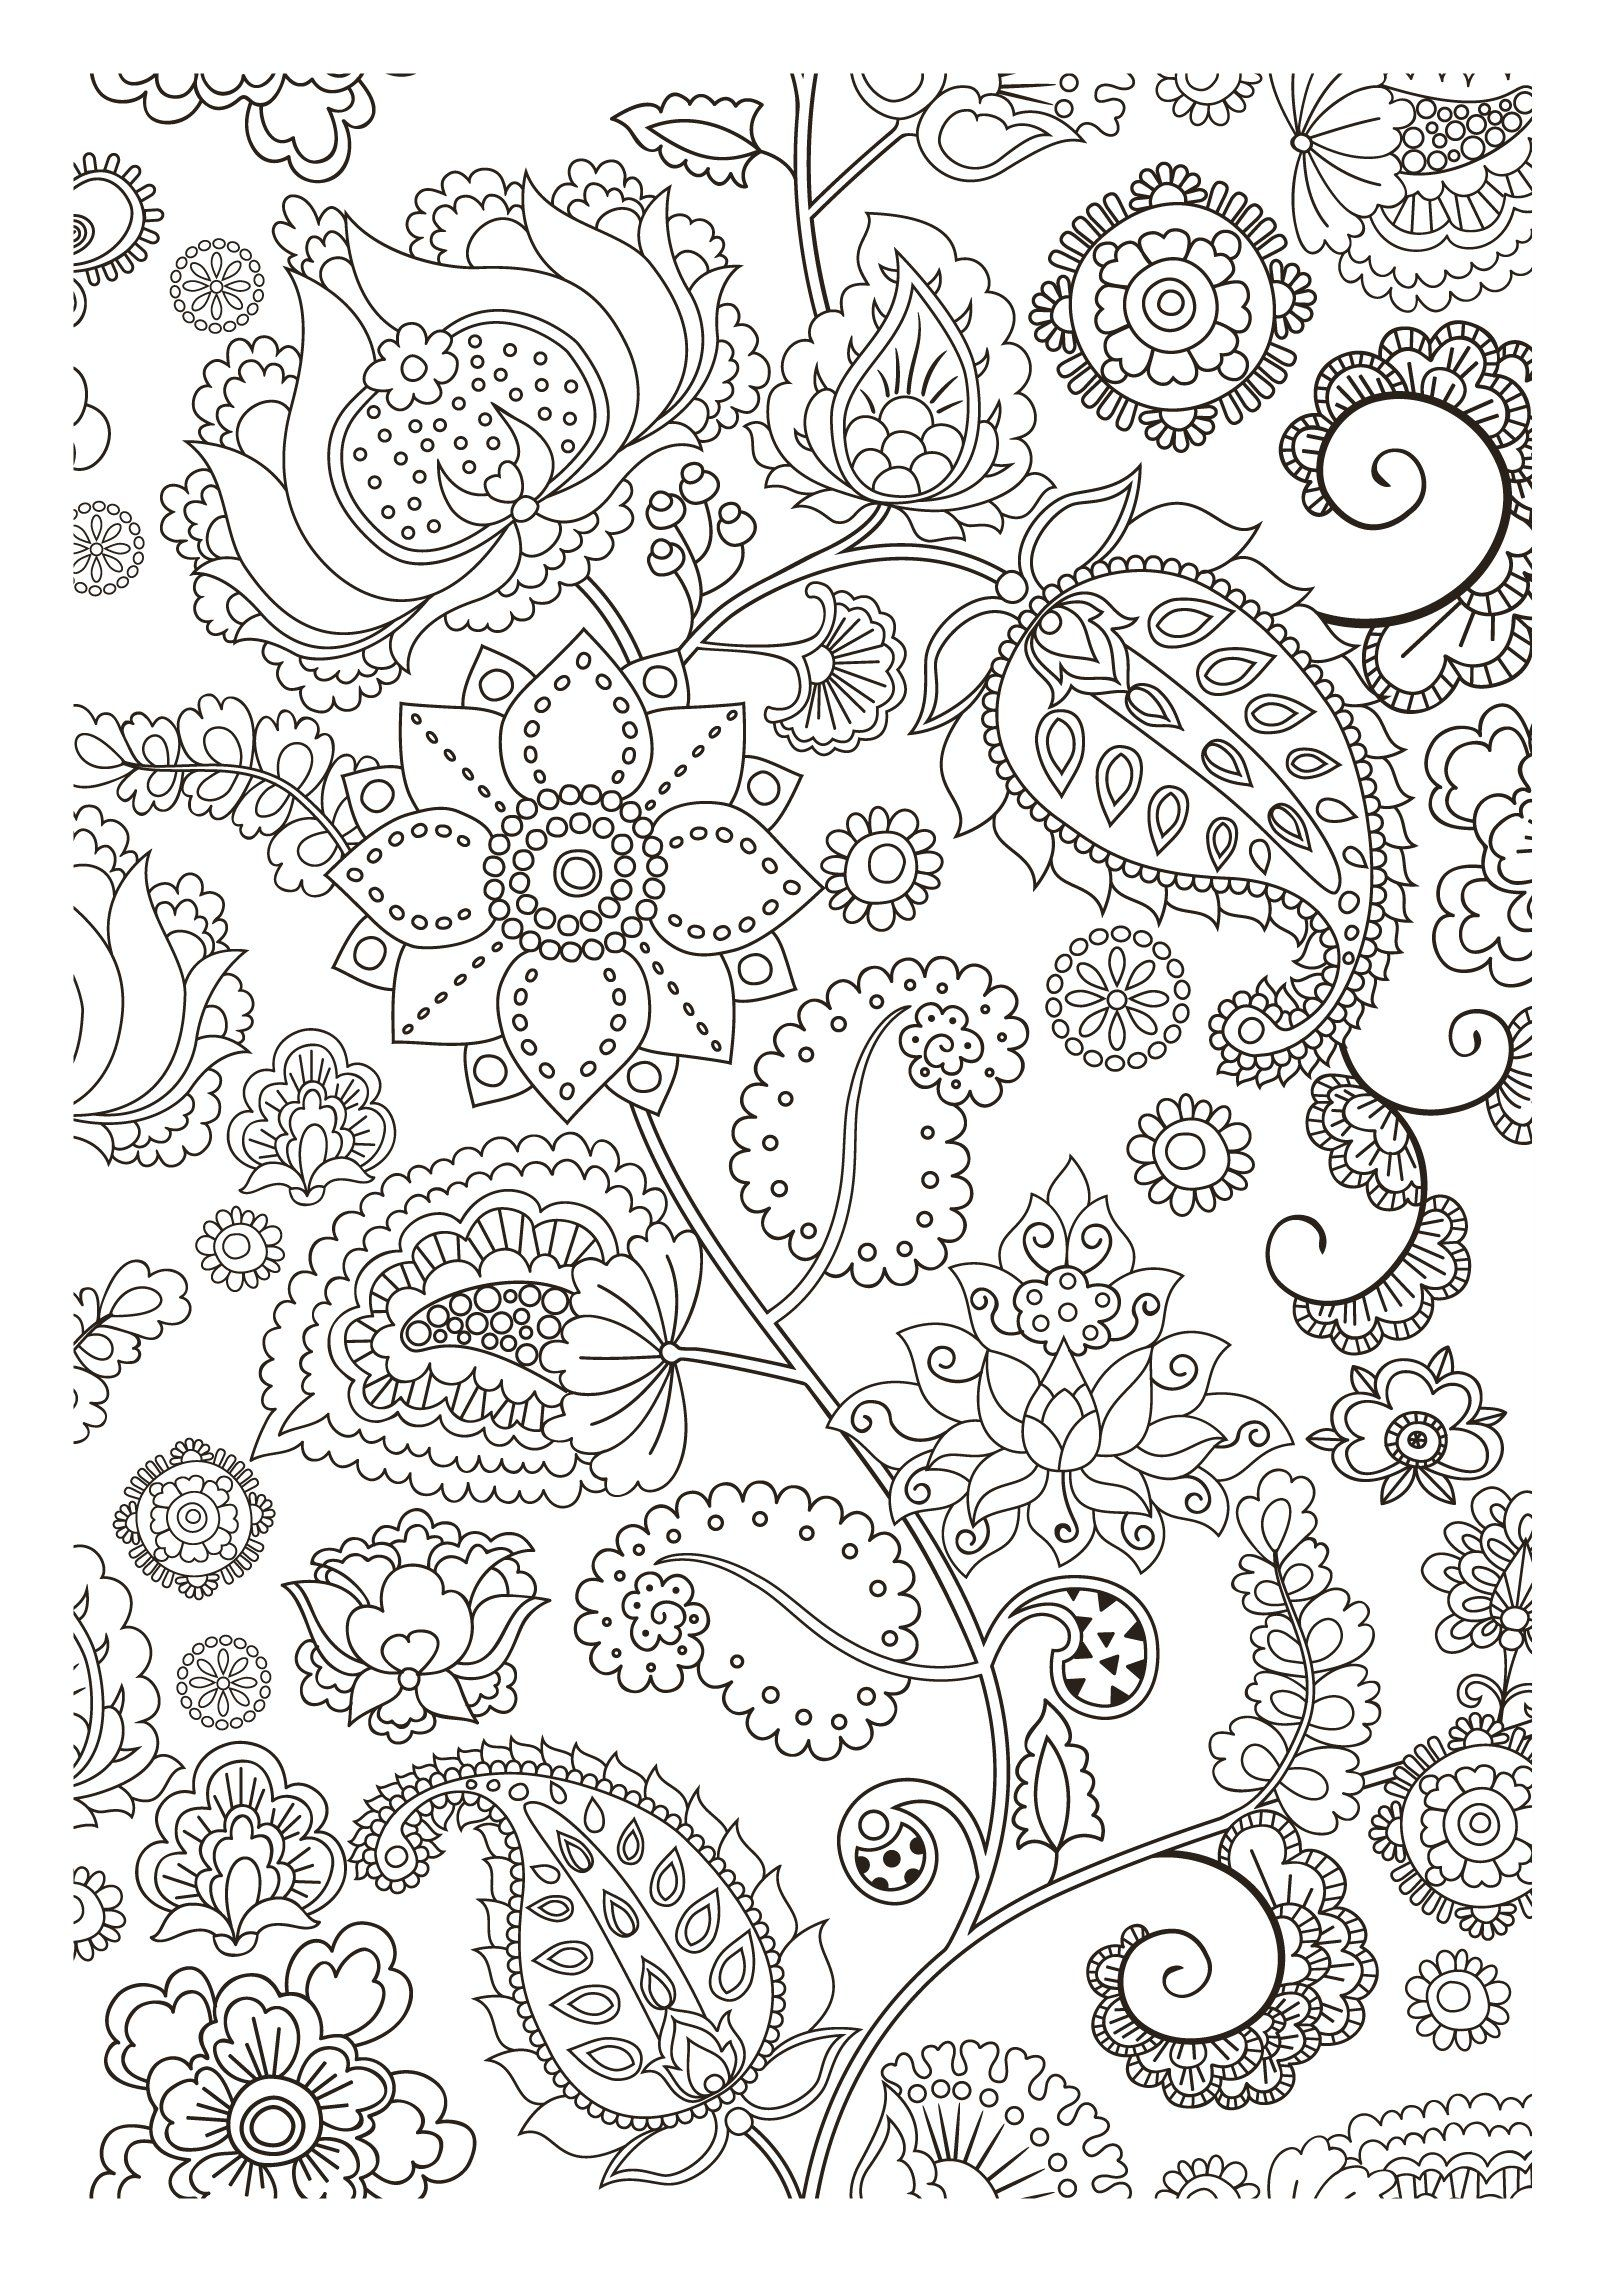 Free Coloring Page Adult Flowers Zen Pretty Strange Letting You Dreaming While